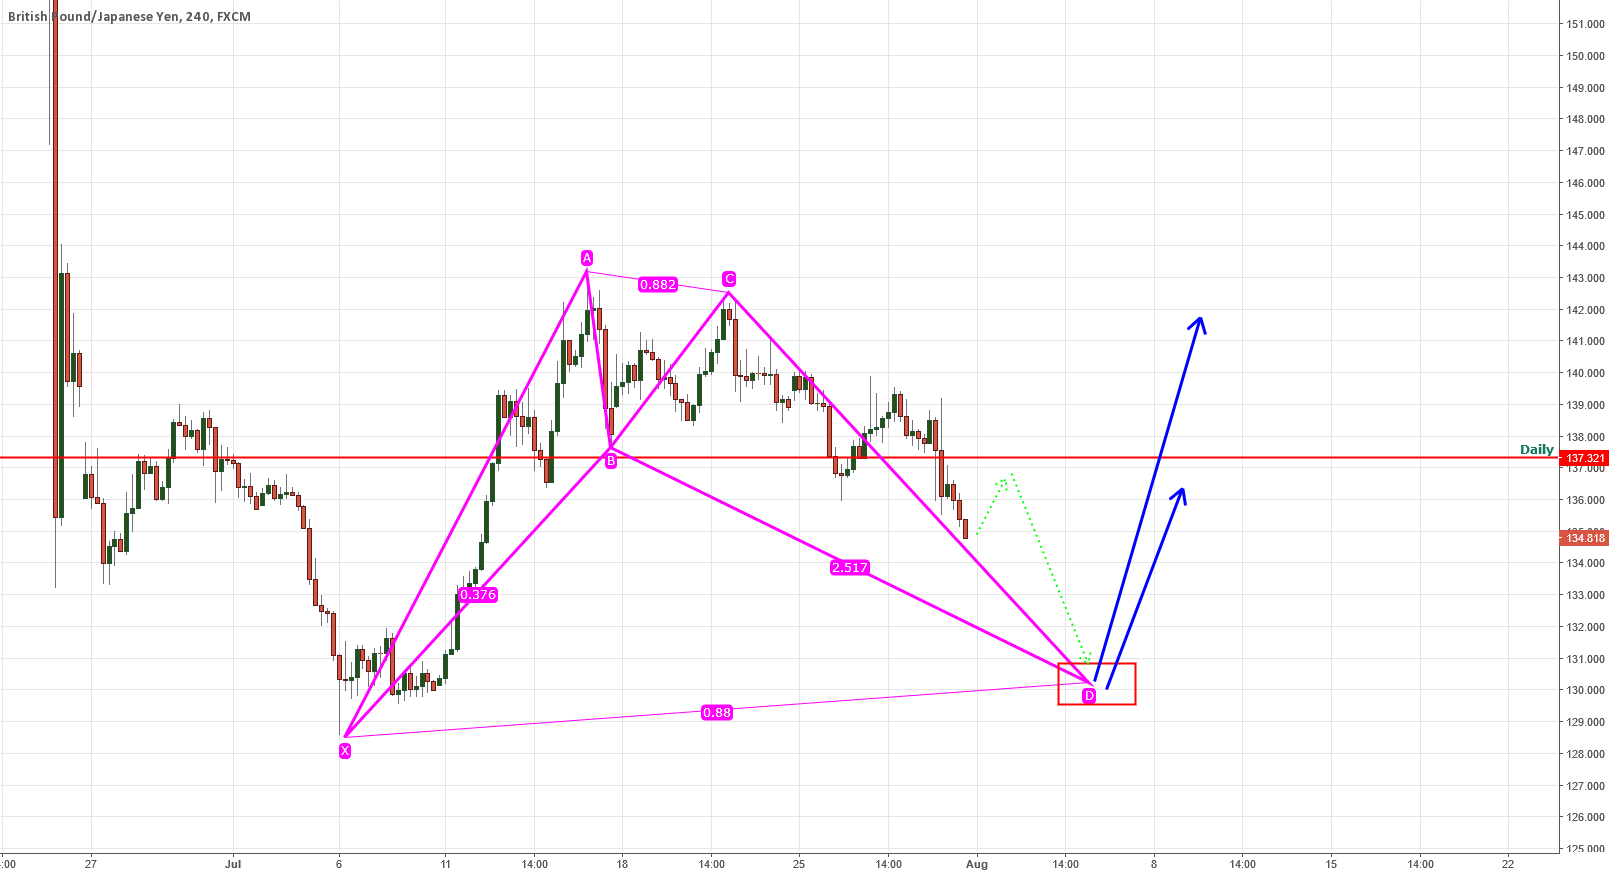 GBPJPY COMING UP POSSIBLE BAT PATTERN